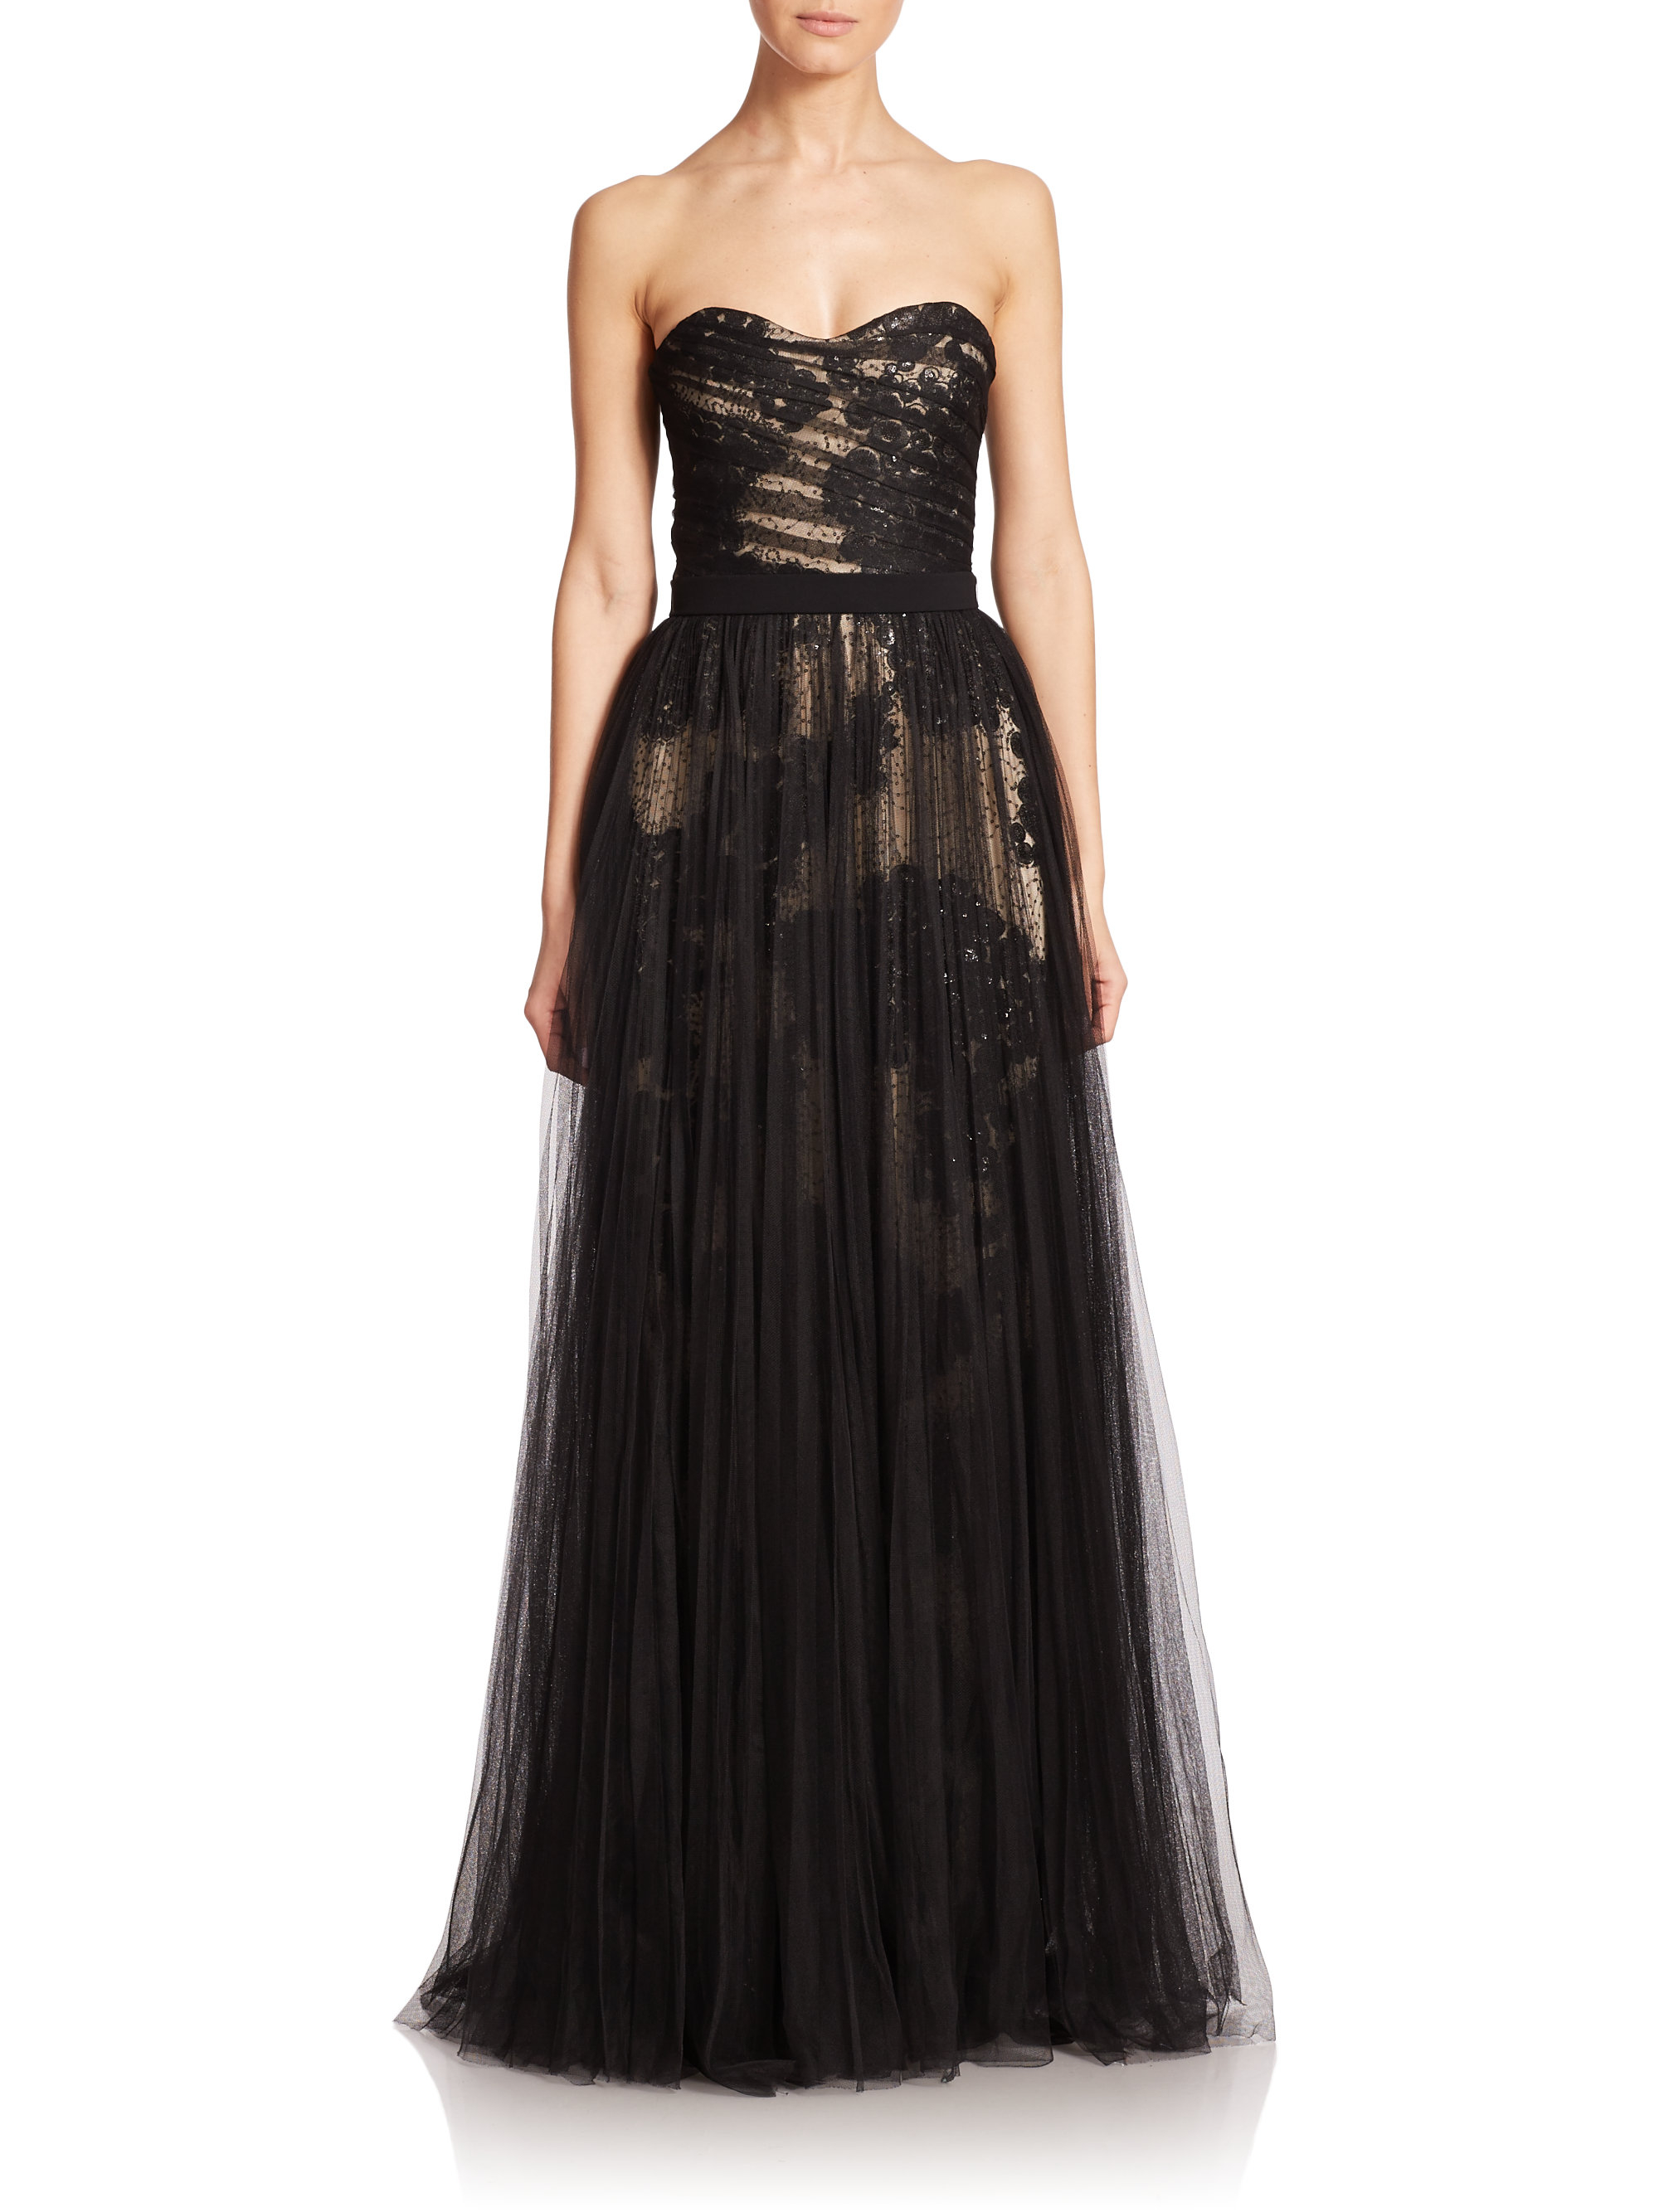 Lyst - Pamella roland Lace & Tulle Strapless Gown in Black